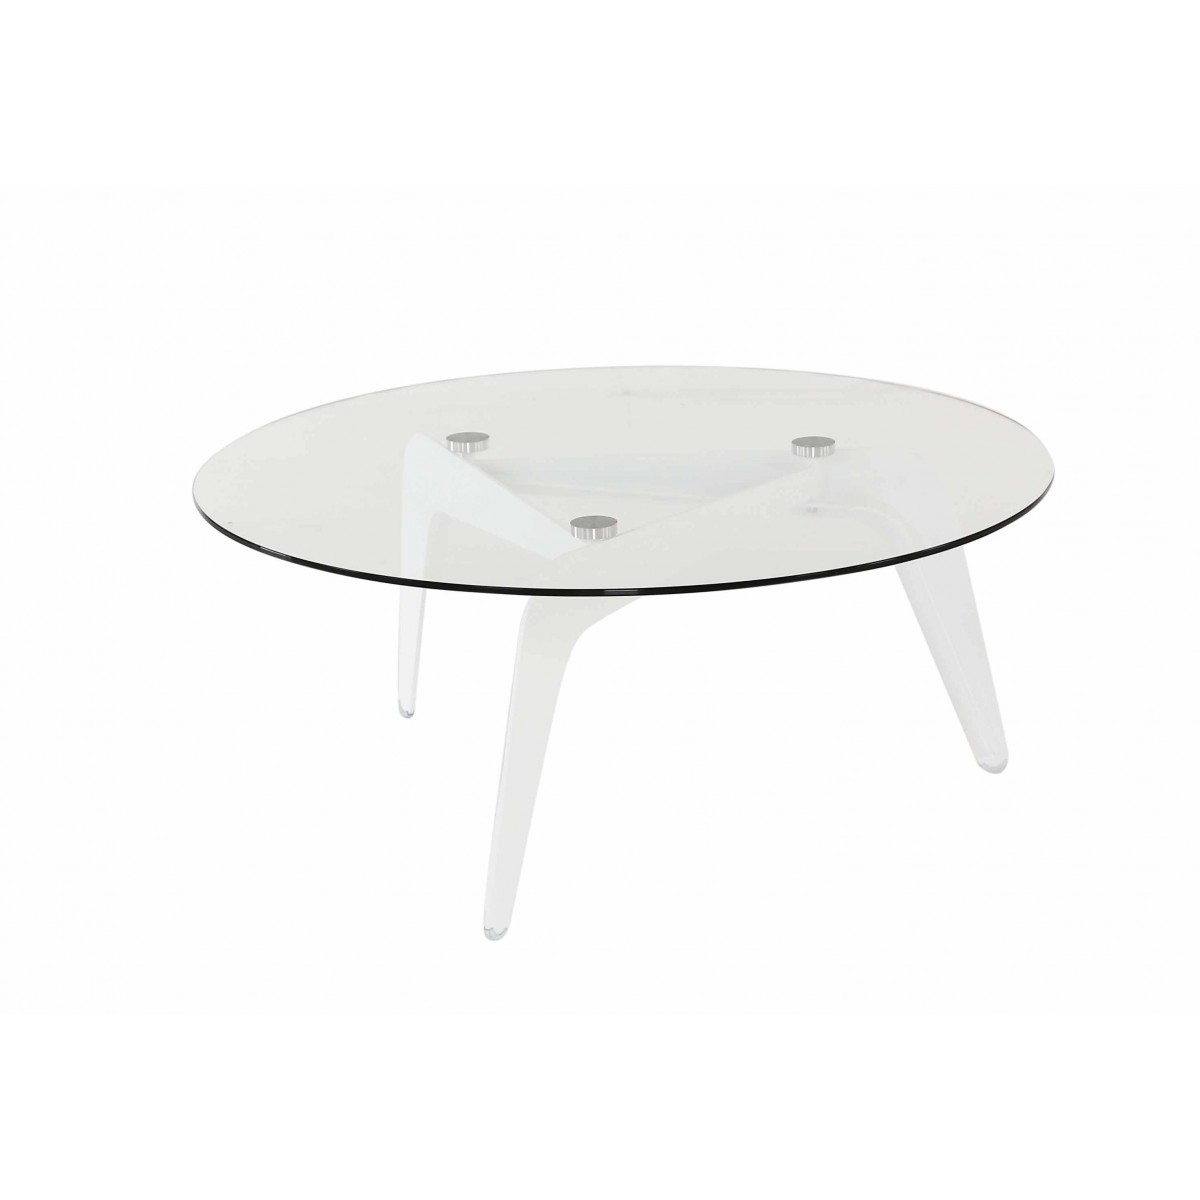 Table Basse Ronde En Verre Design Mooviin